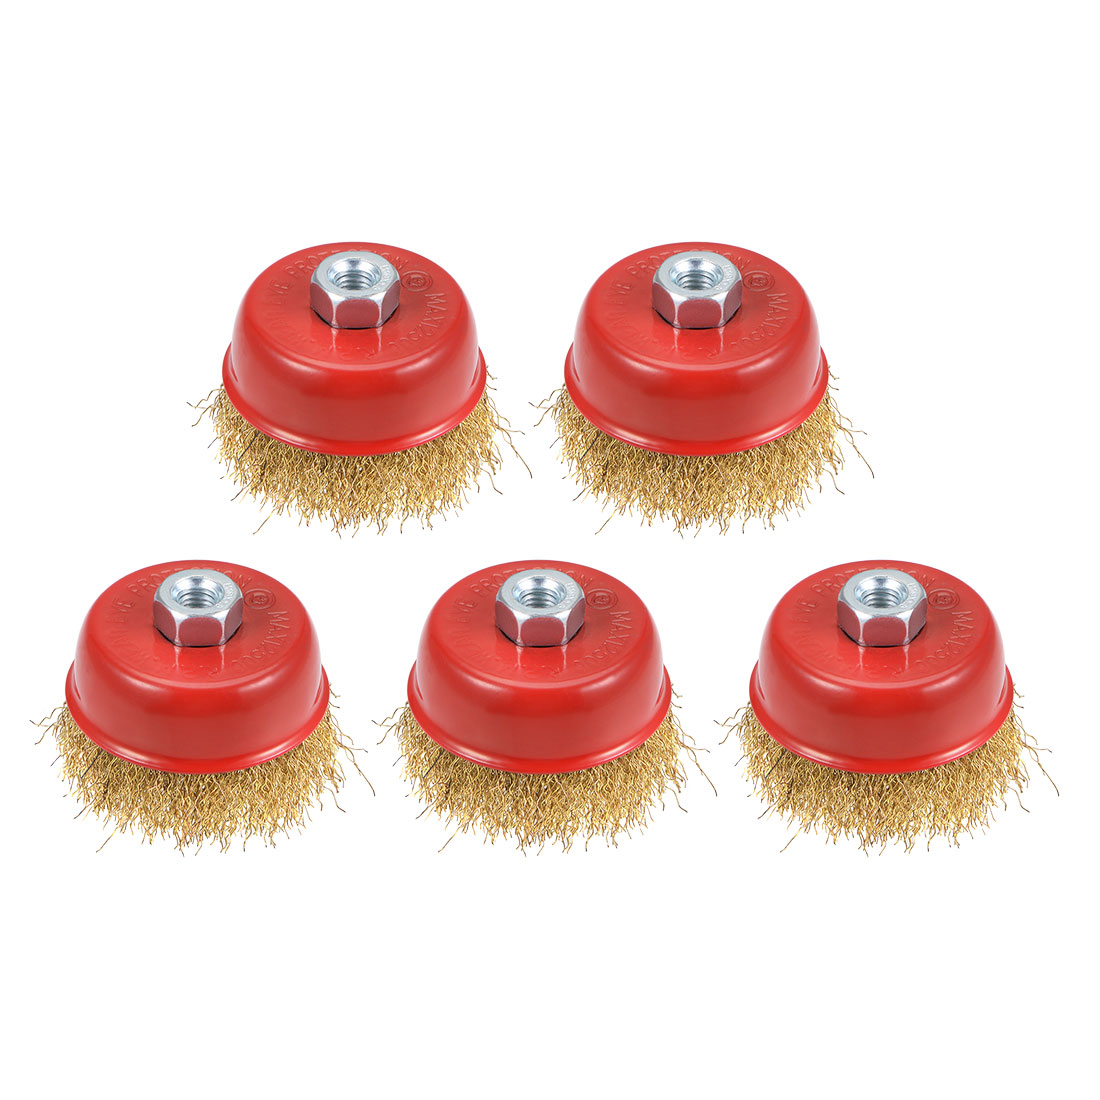 3-Inch Wire Cup Brush Brass Plated Crimped Steel with M10 Threaded Hole 5 Pcs